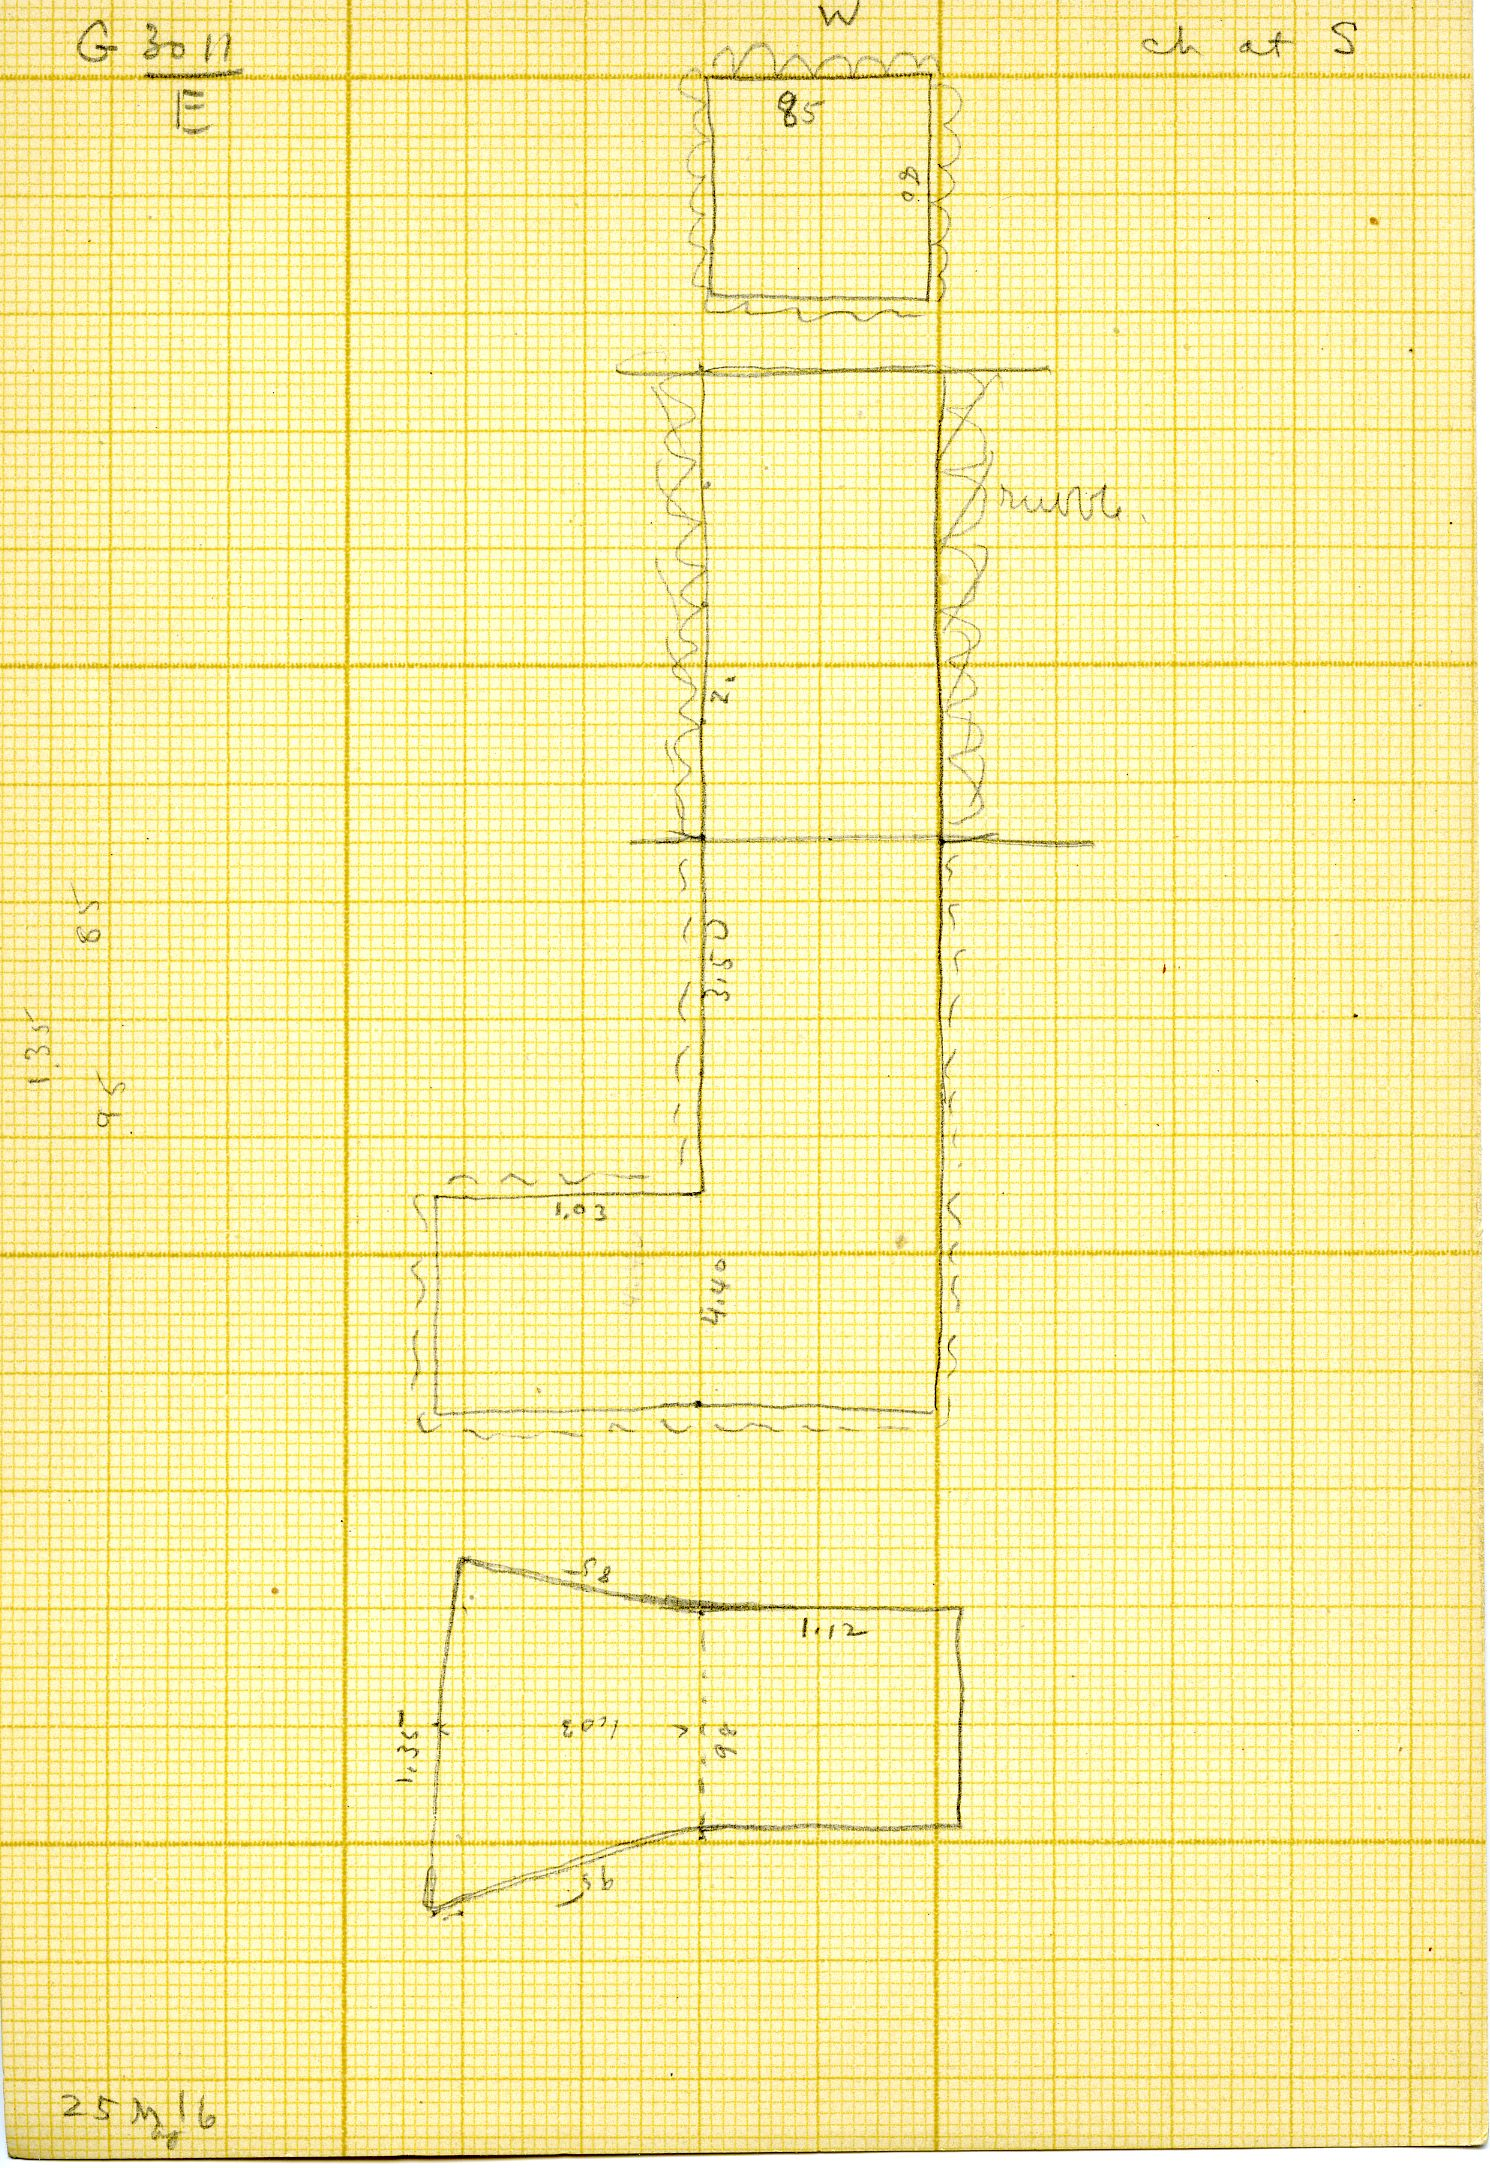 Maps and plans: G 3011, Shaft E